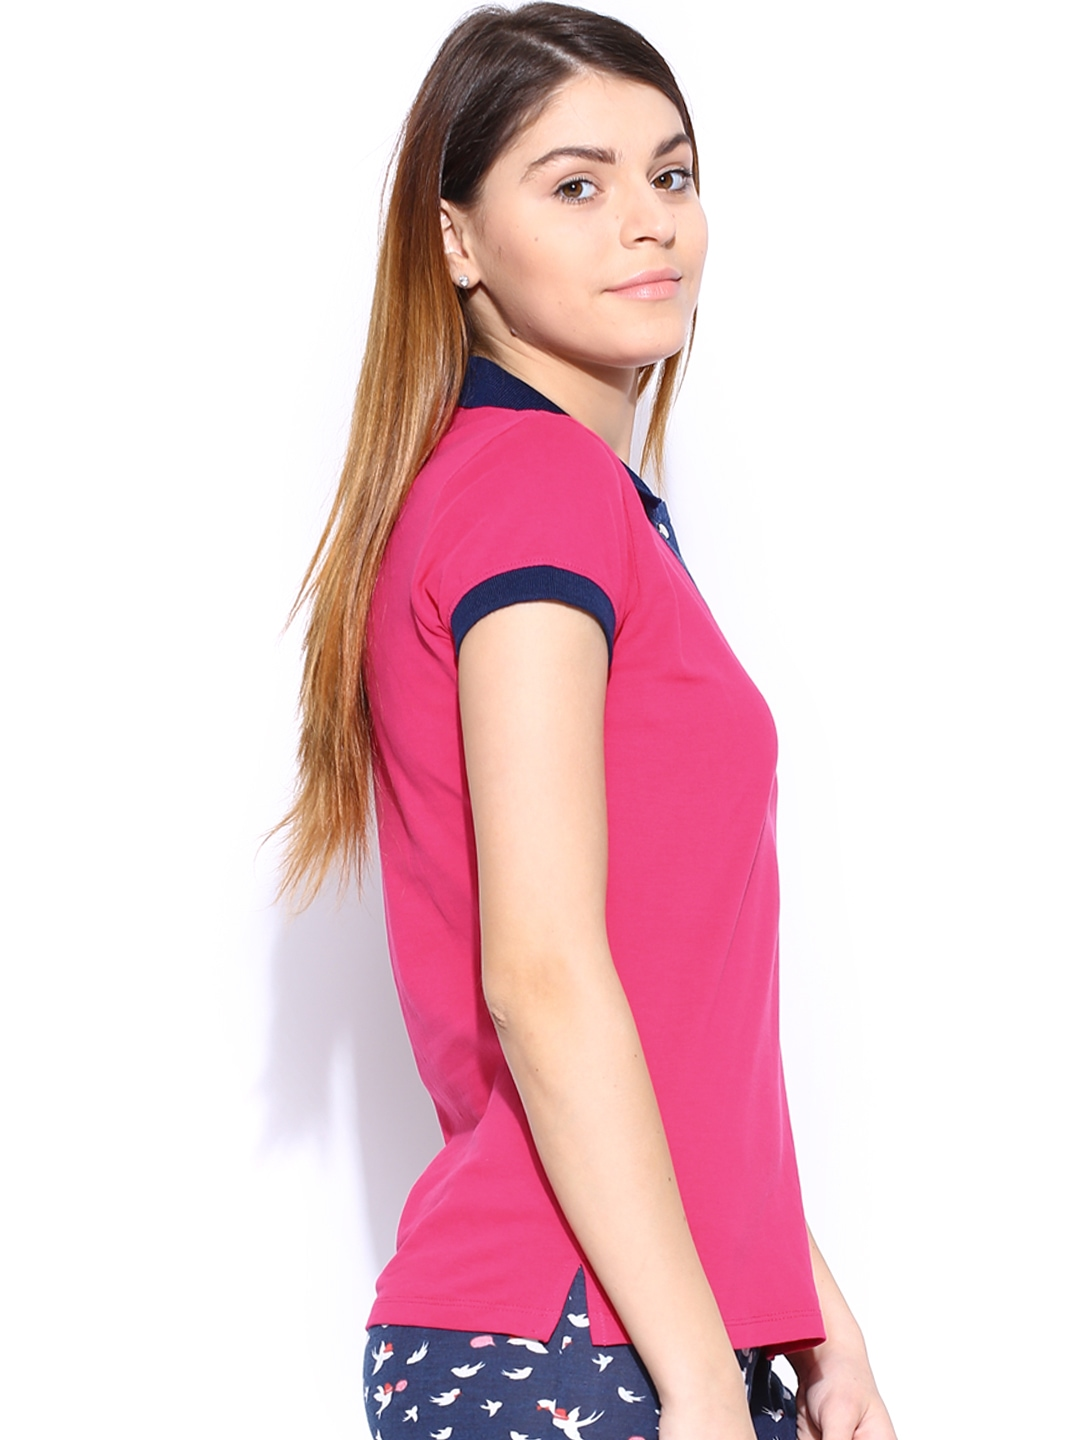 myntra sdl by sweet dreams magenta navy polo t shirt 864177 buy myntra sdl by sweet dreams. Black Bedroom Furniture Sets. Home Design Ideas